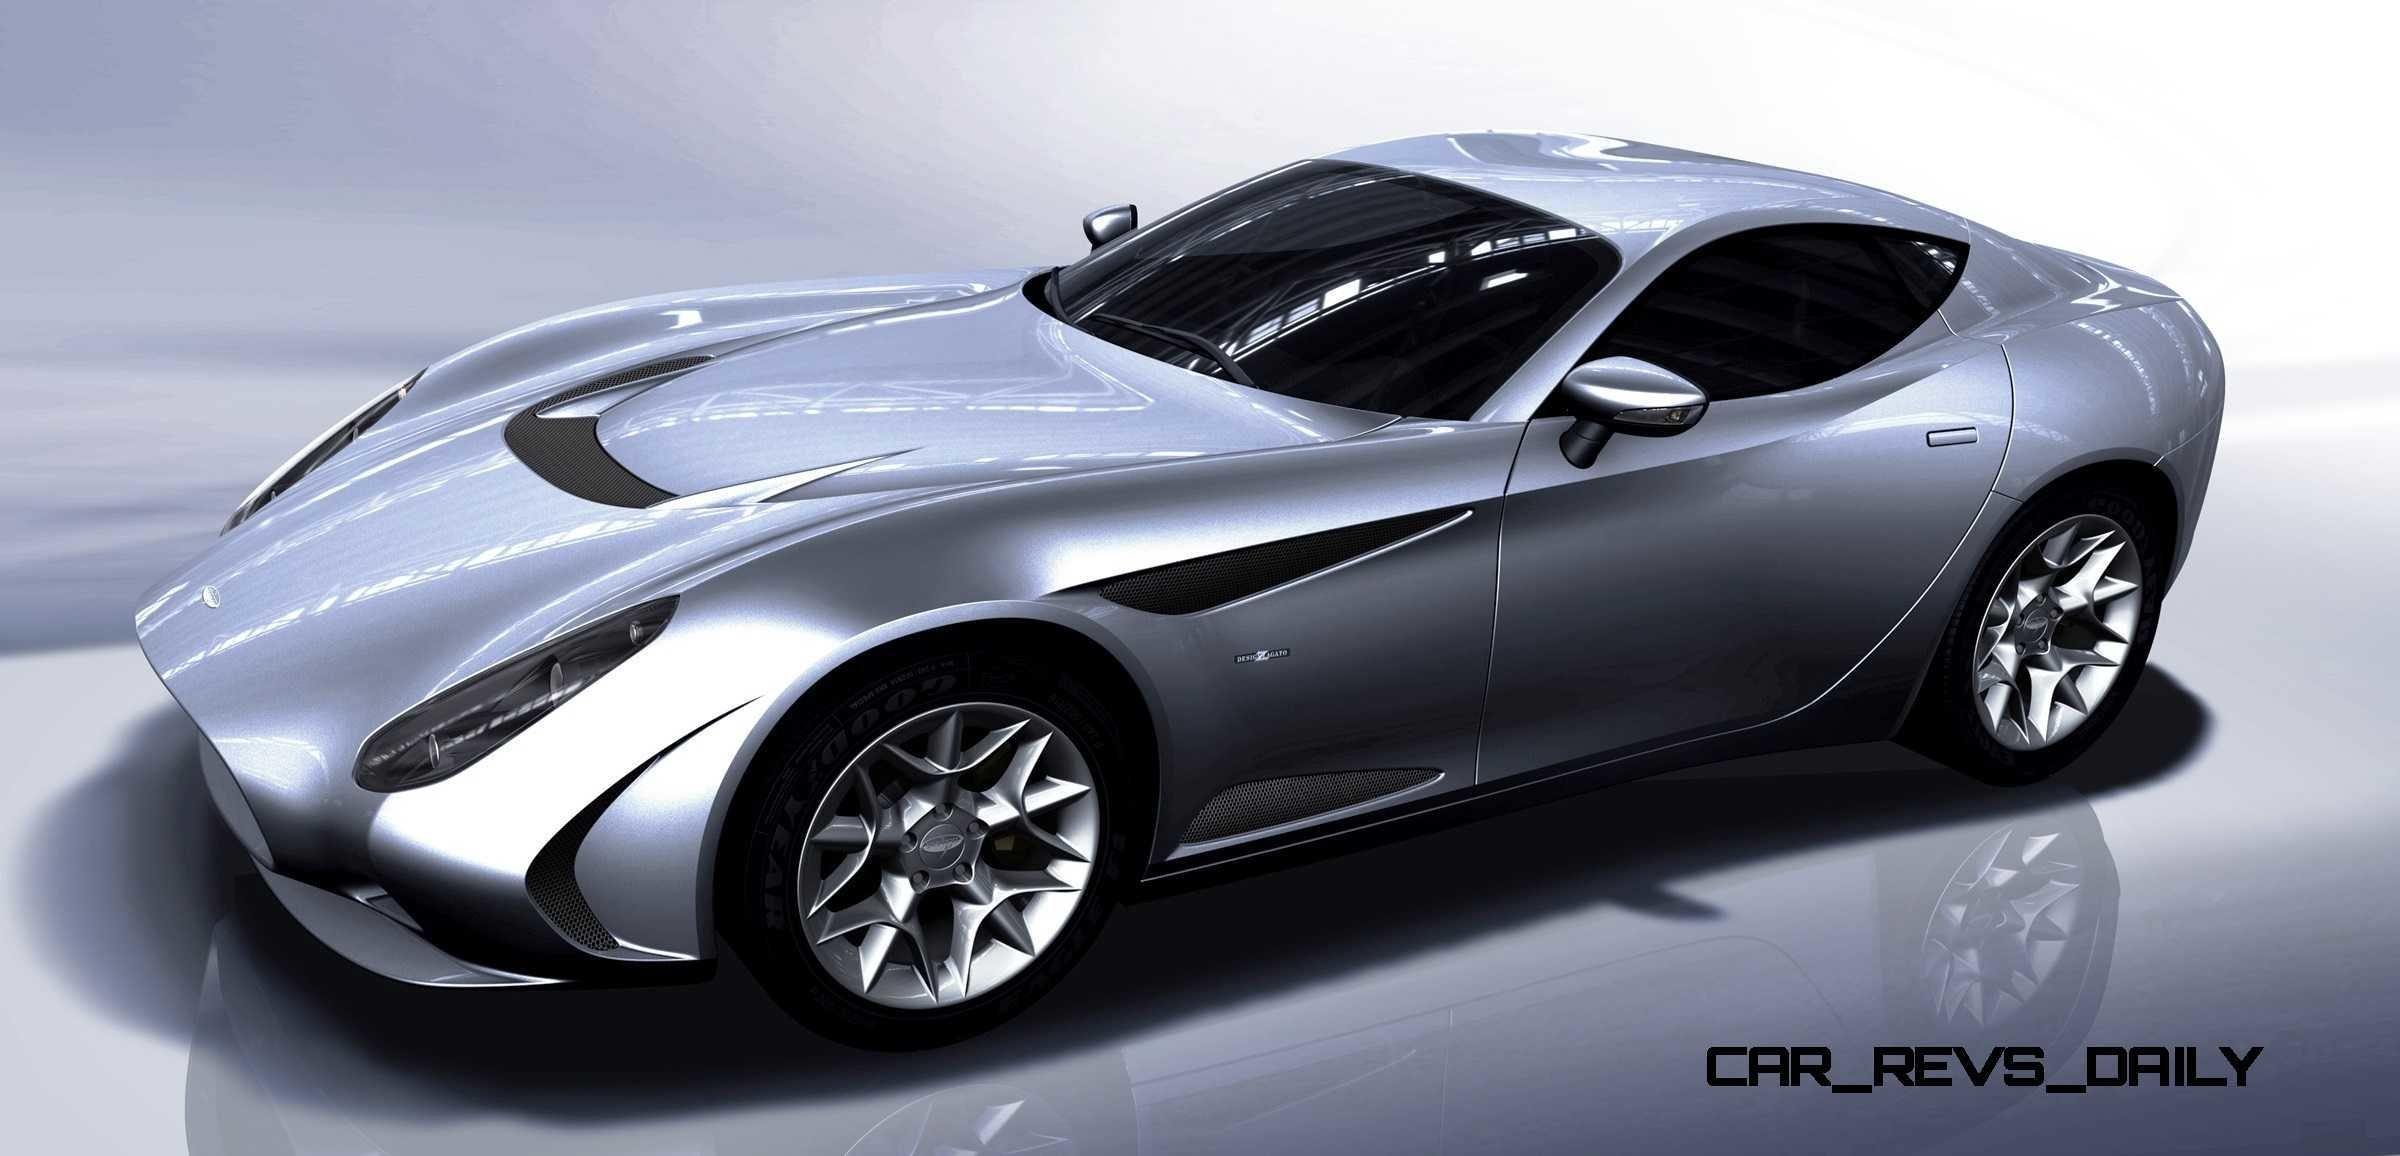 Latest 2012 Ac 378Gt By Zagato Free Download